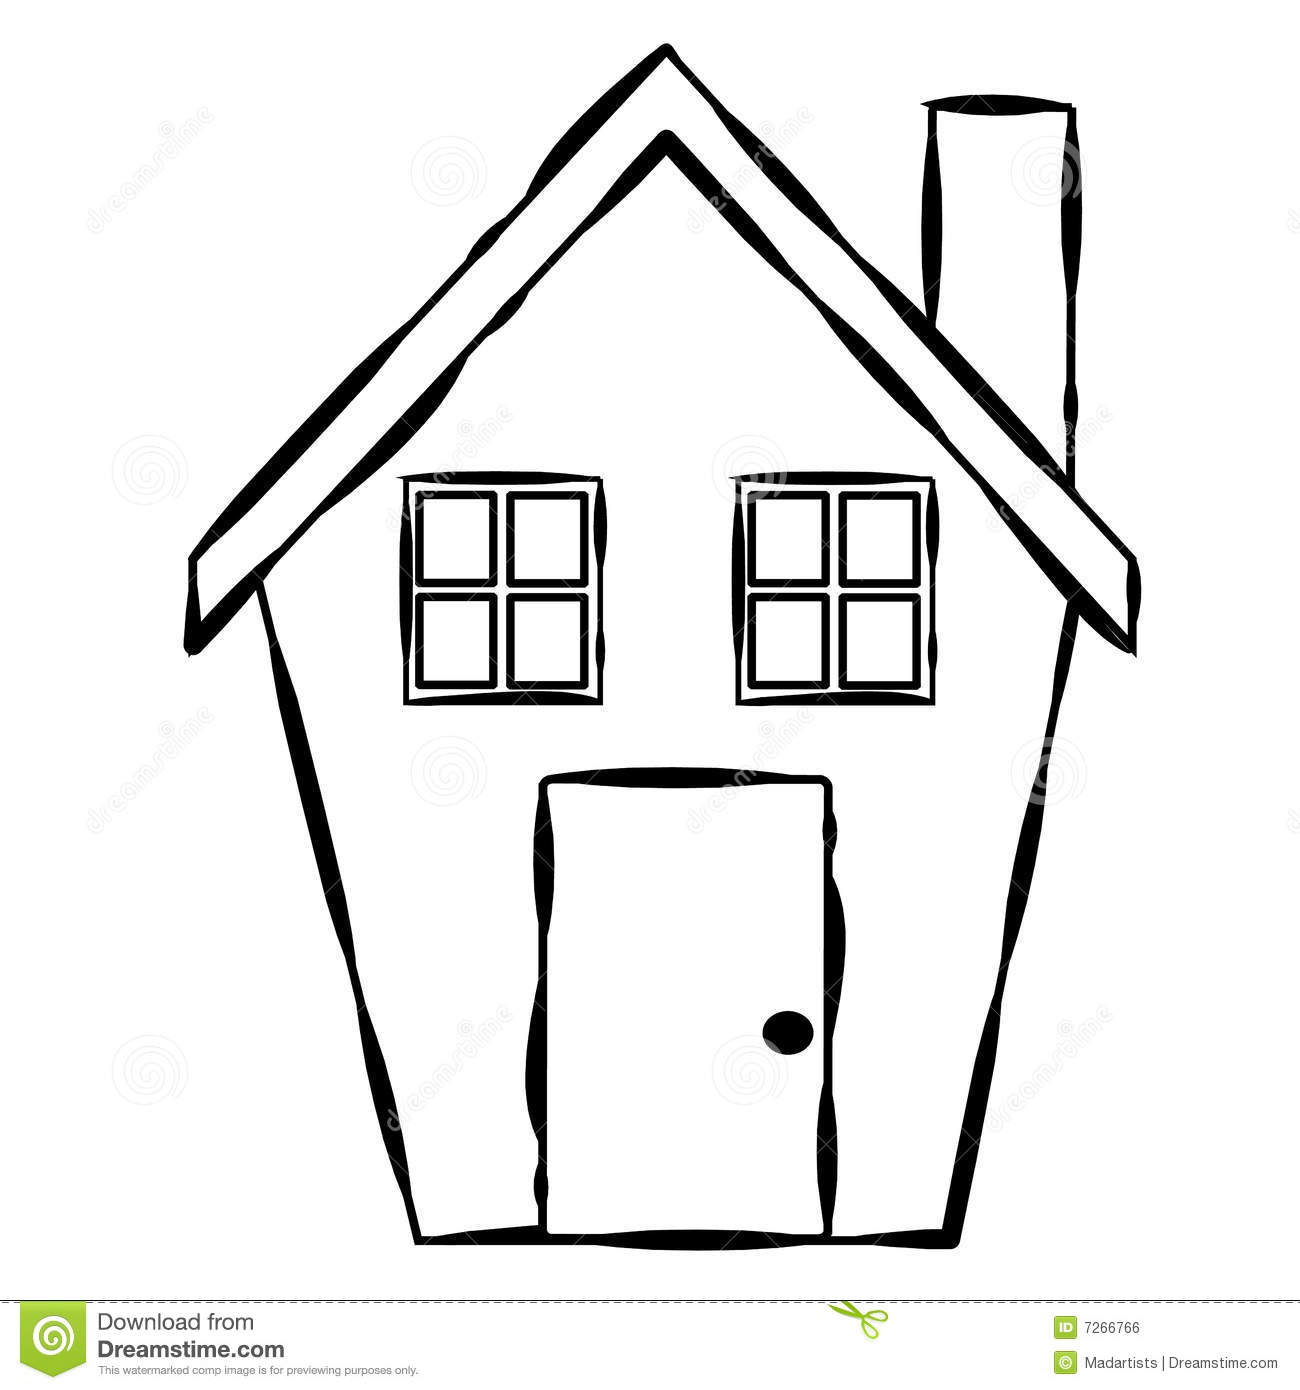 Line Art Of House : Simple house line art stock illustration of